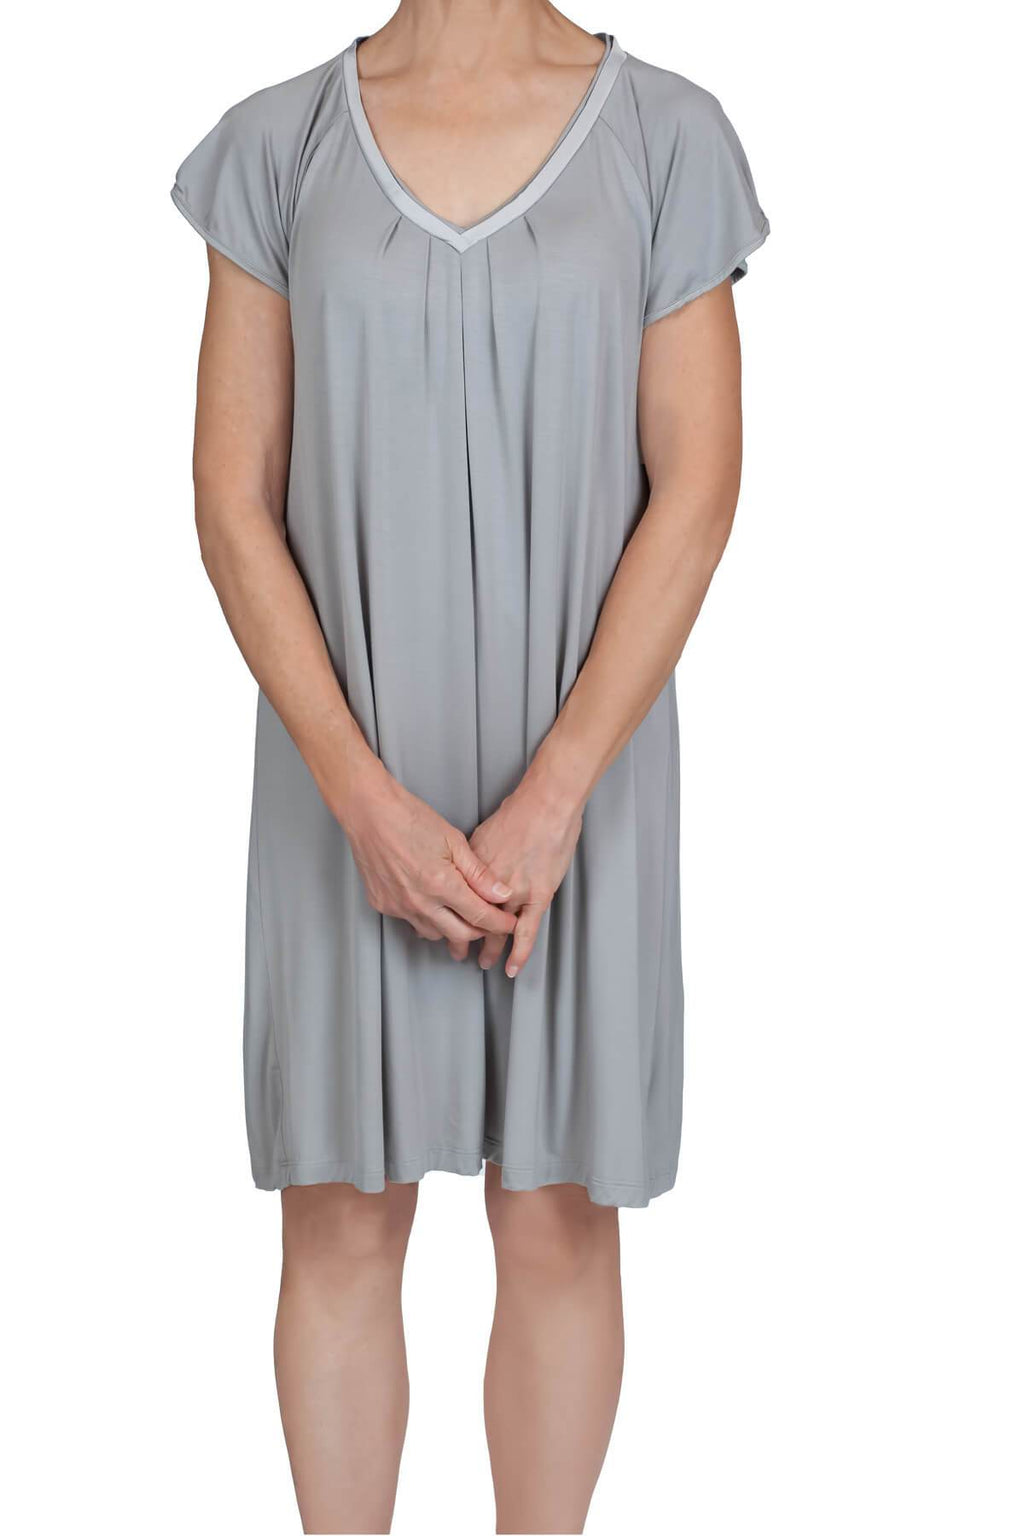 Sydney Knit Nightshirt - Dove Gray Mystique Intimates